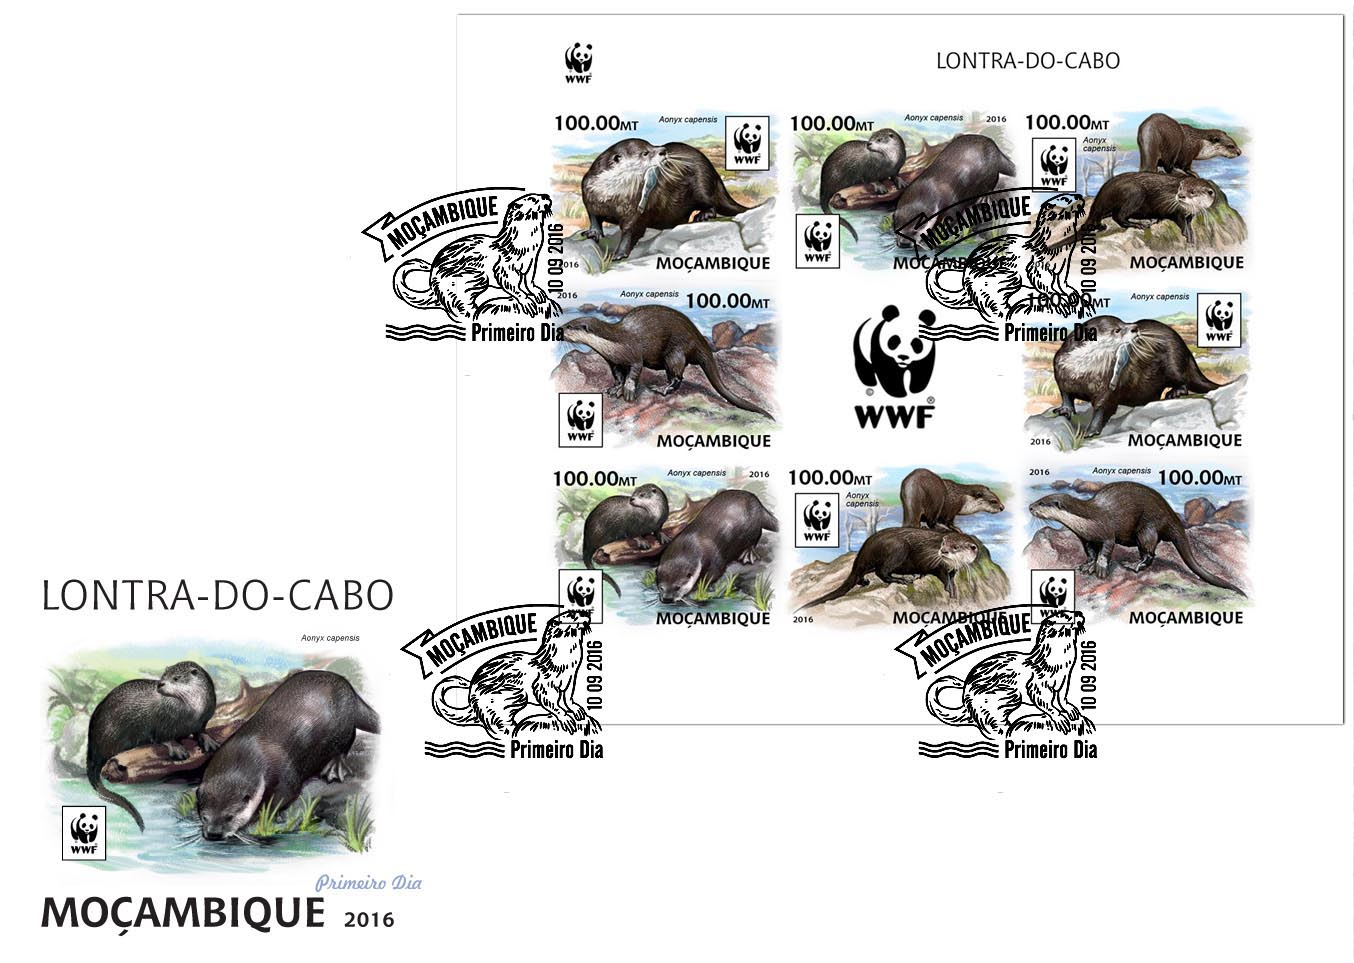 WWF – Otter (FDC imperf.) - Issue of Mozambique postage Stamps